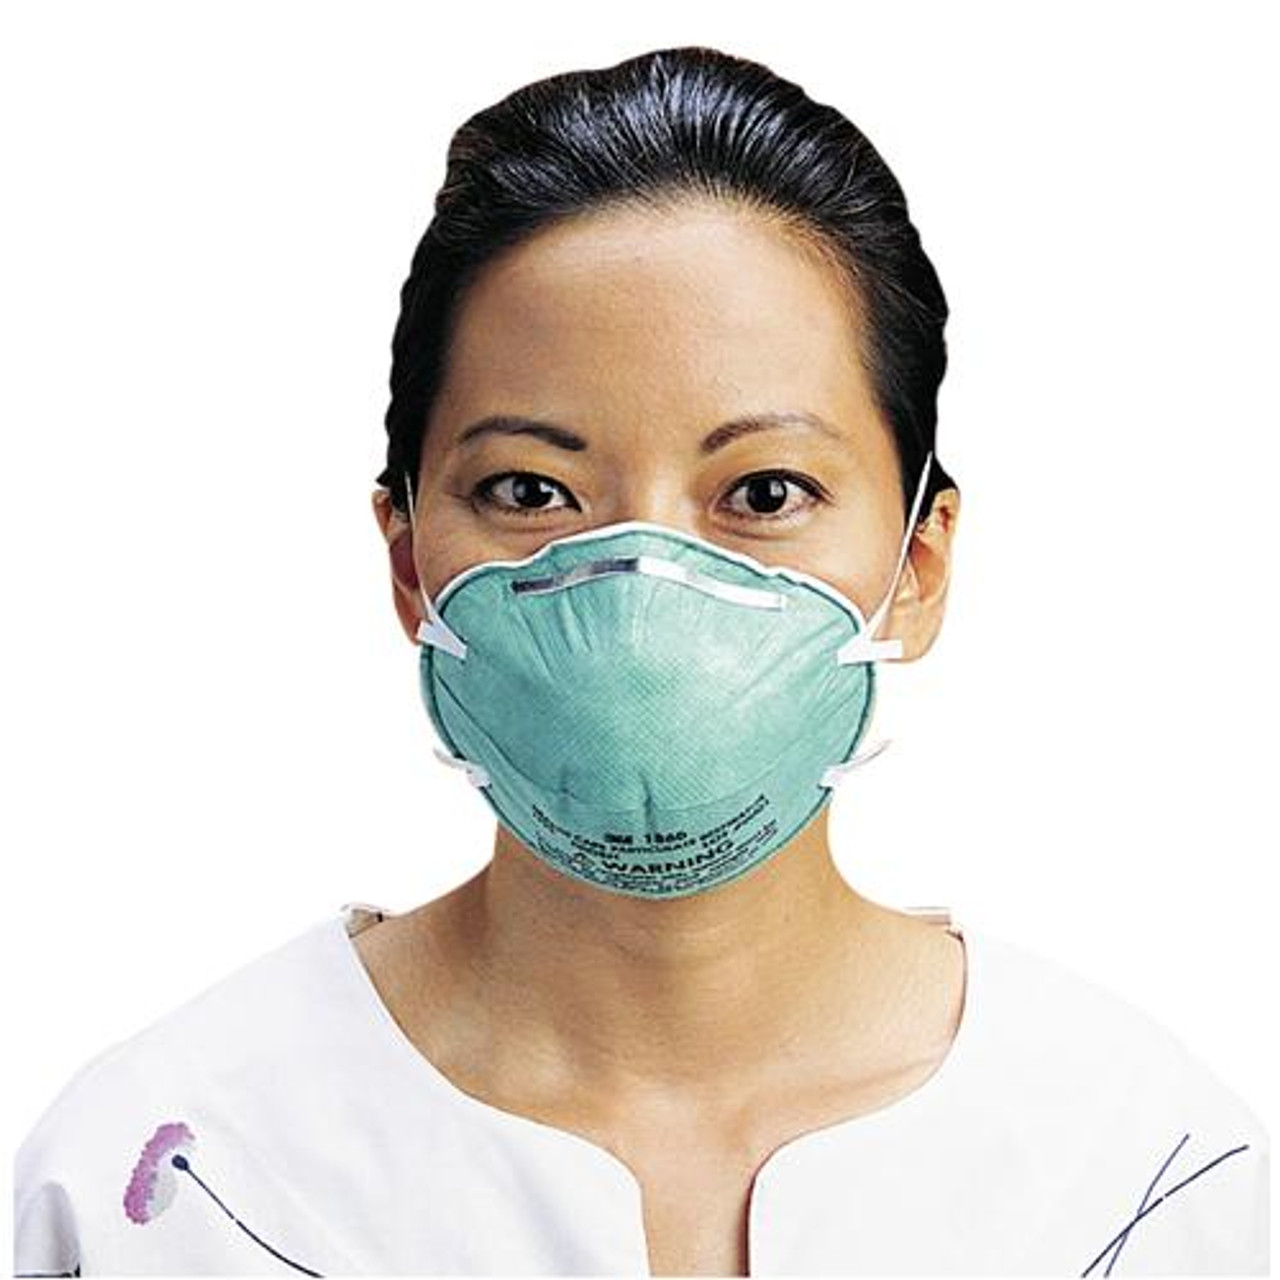 20 1860 N95 Particulate Respirator N95 Safety Mask package 3m Of Regular